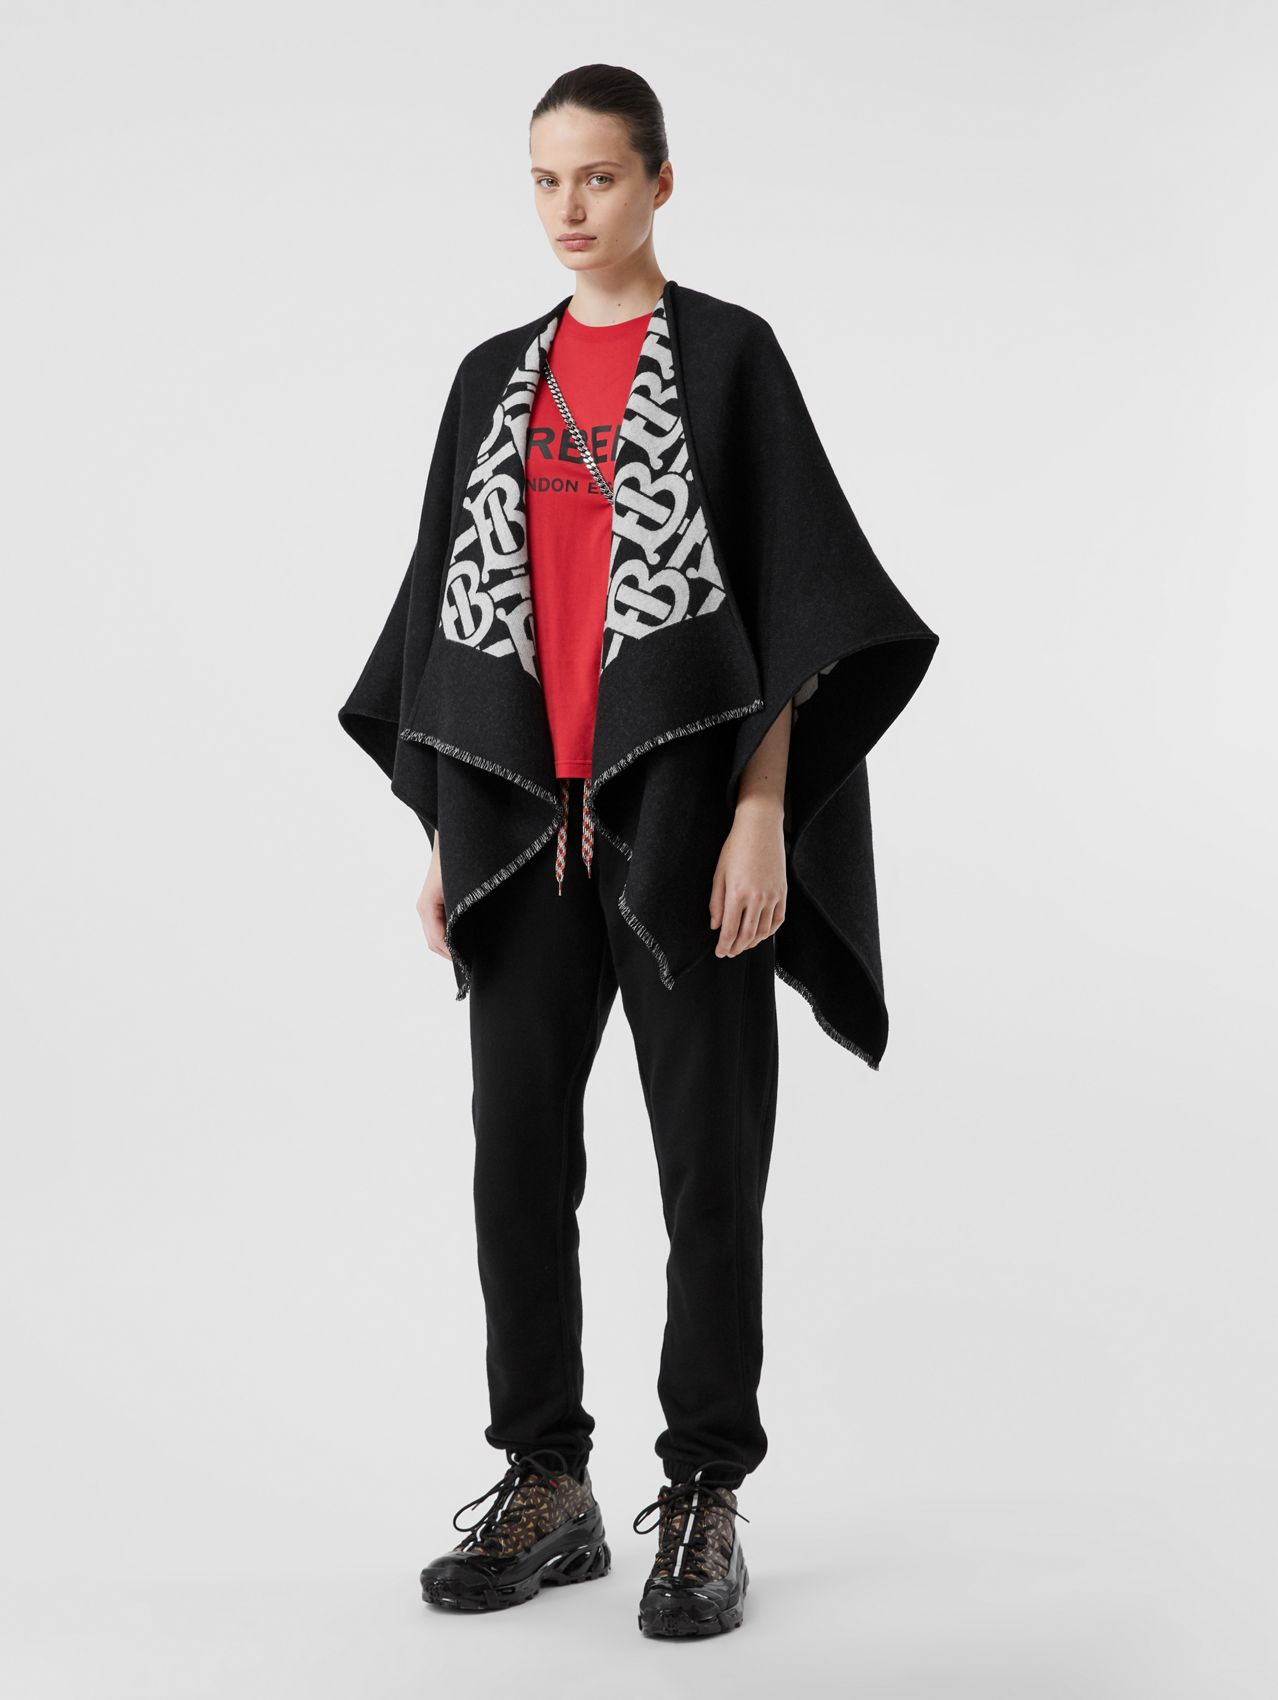 Monogram Wool Jacquard Cape (Black)